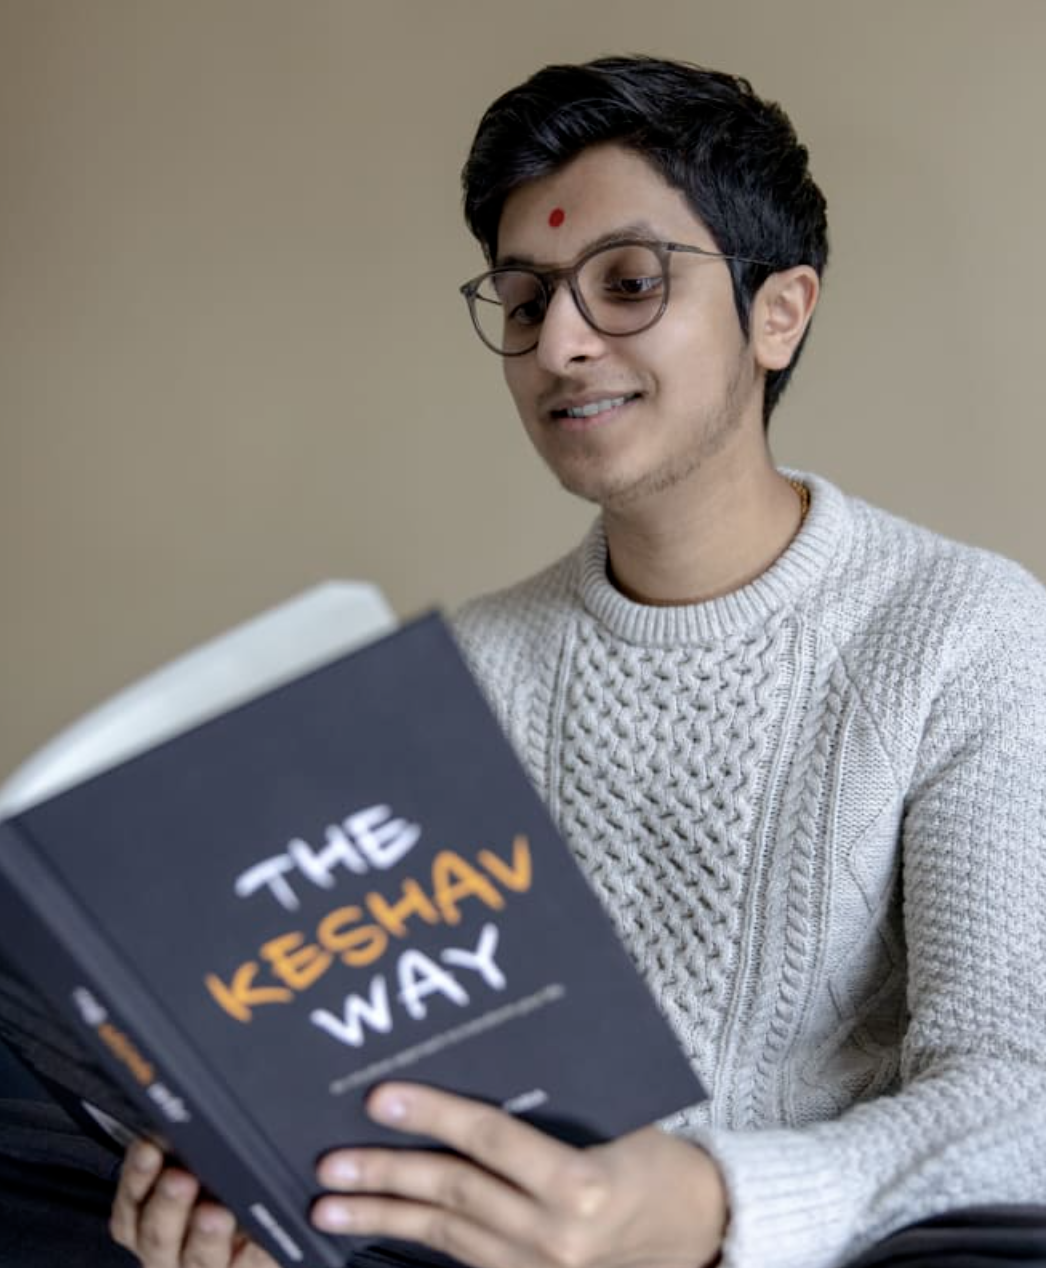 Vinay Sutaria Presents a New Outlook on Happiness With Newly-released Book 'The Keshav Way'